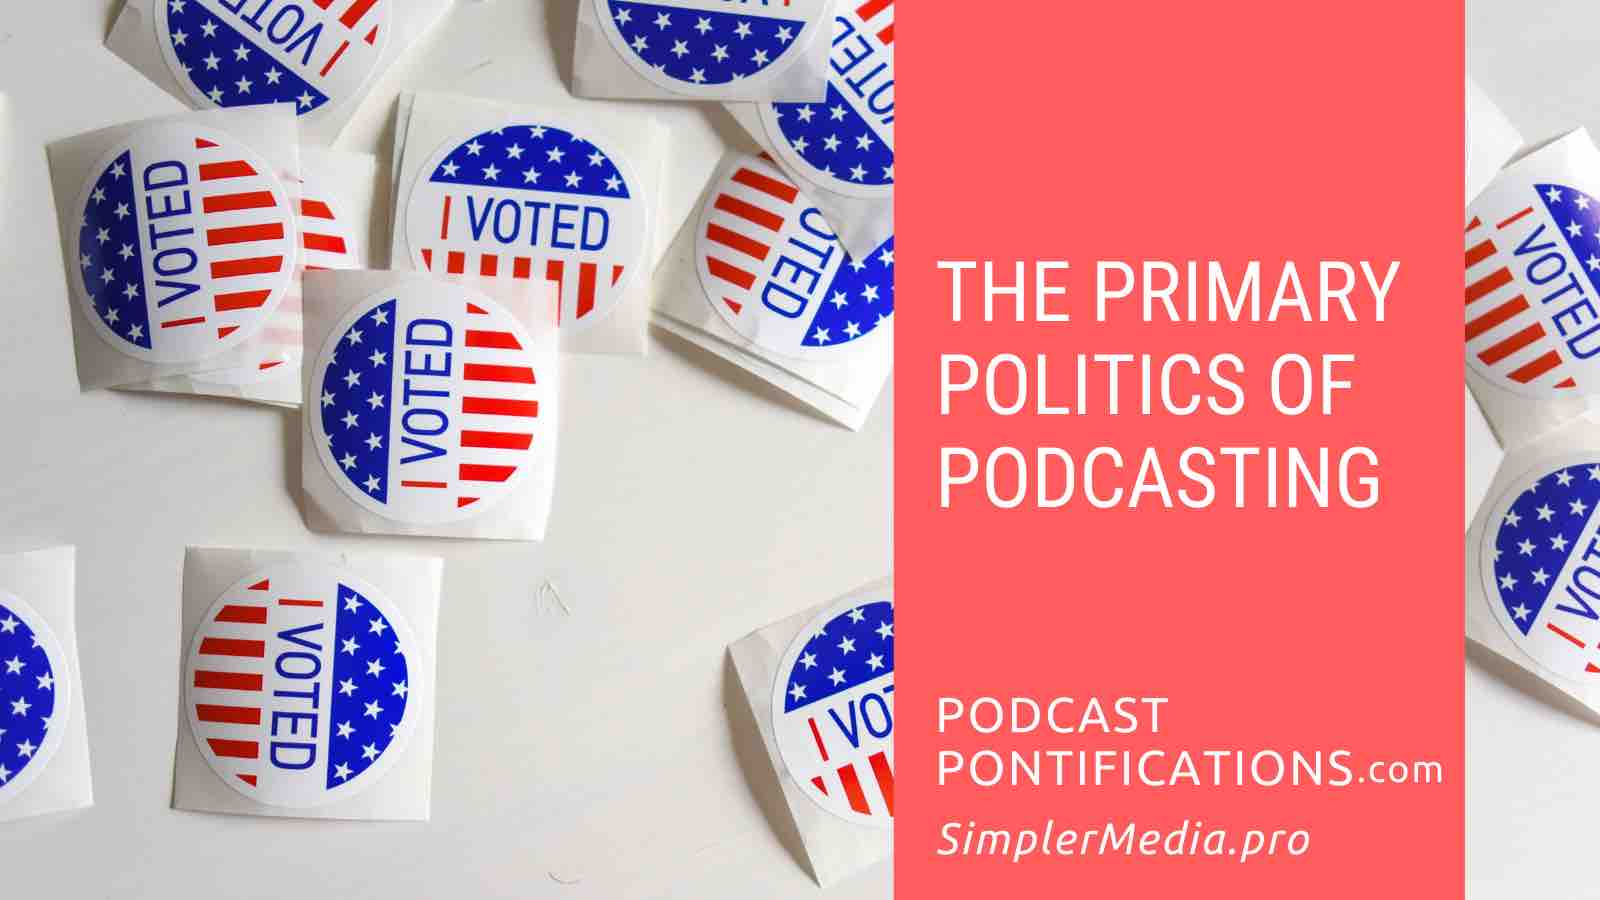 The Primary Politics of Podcasting